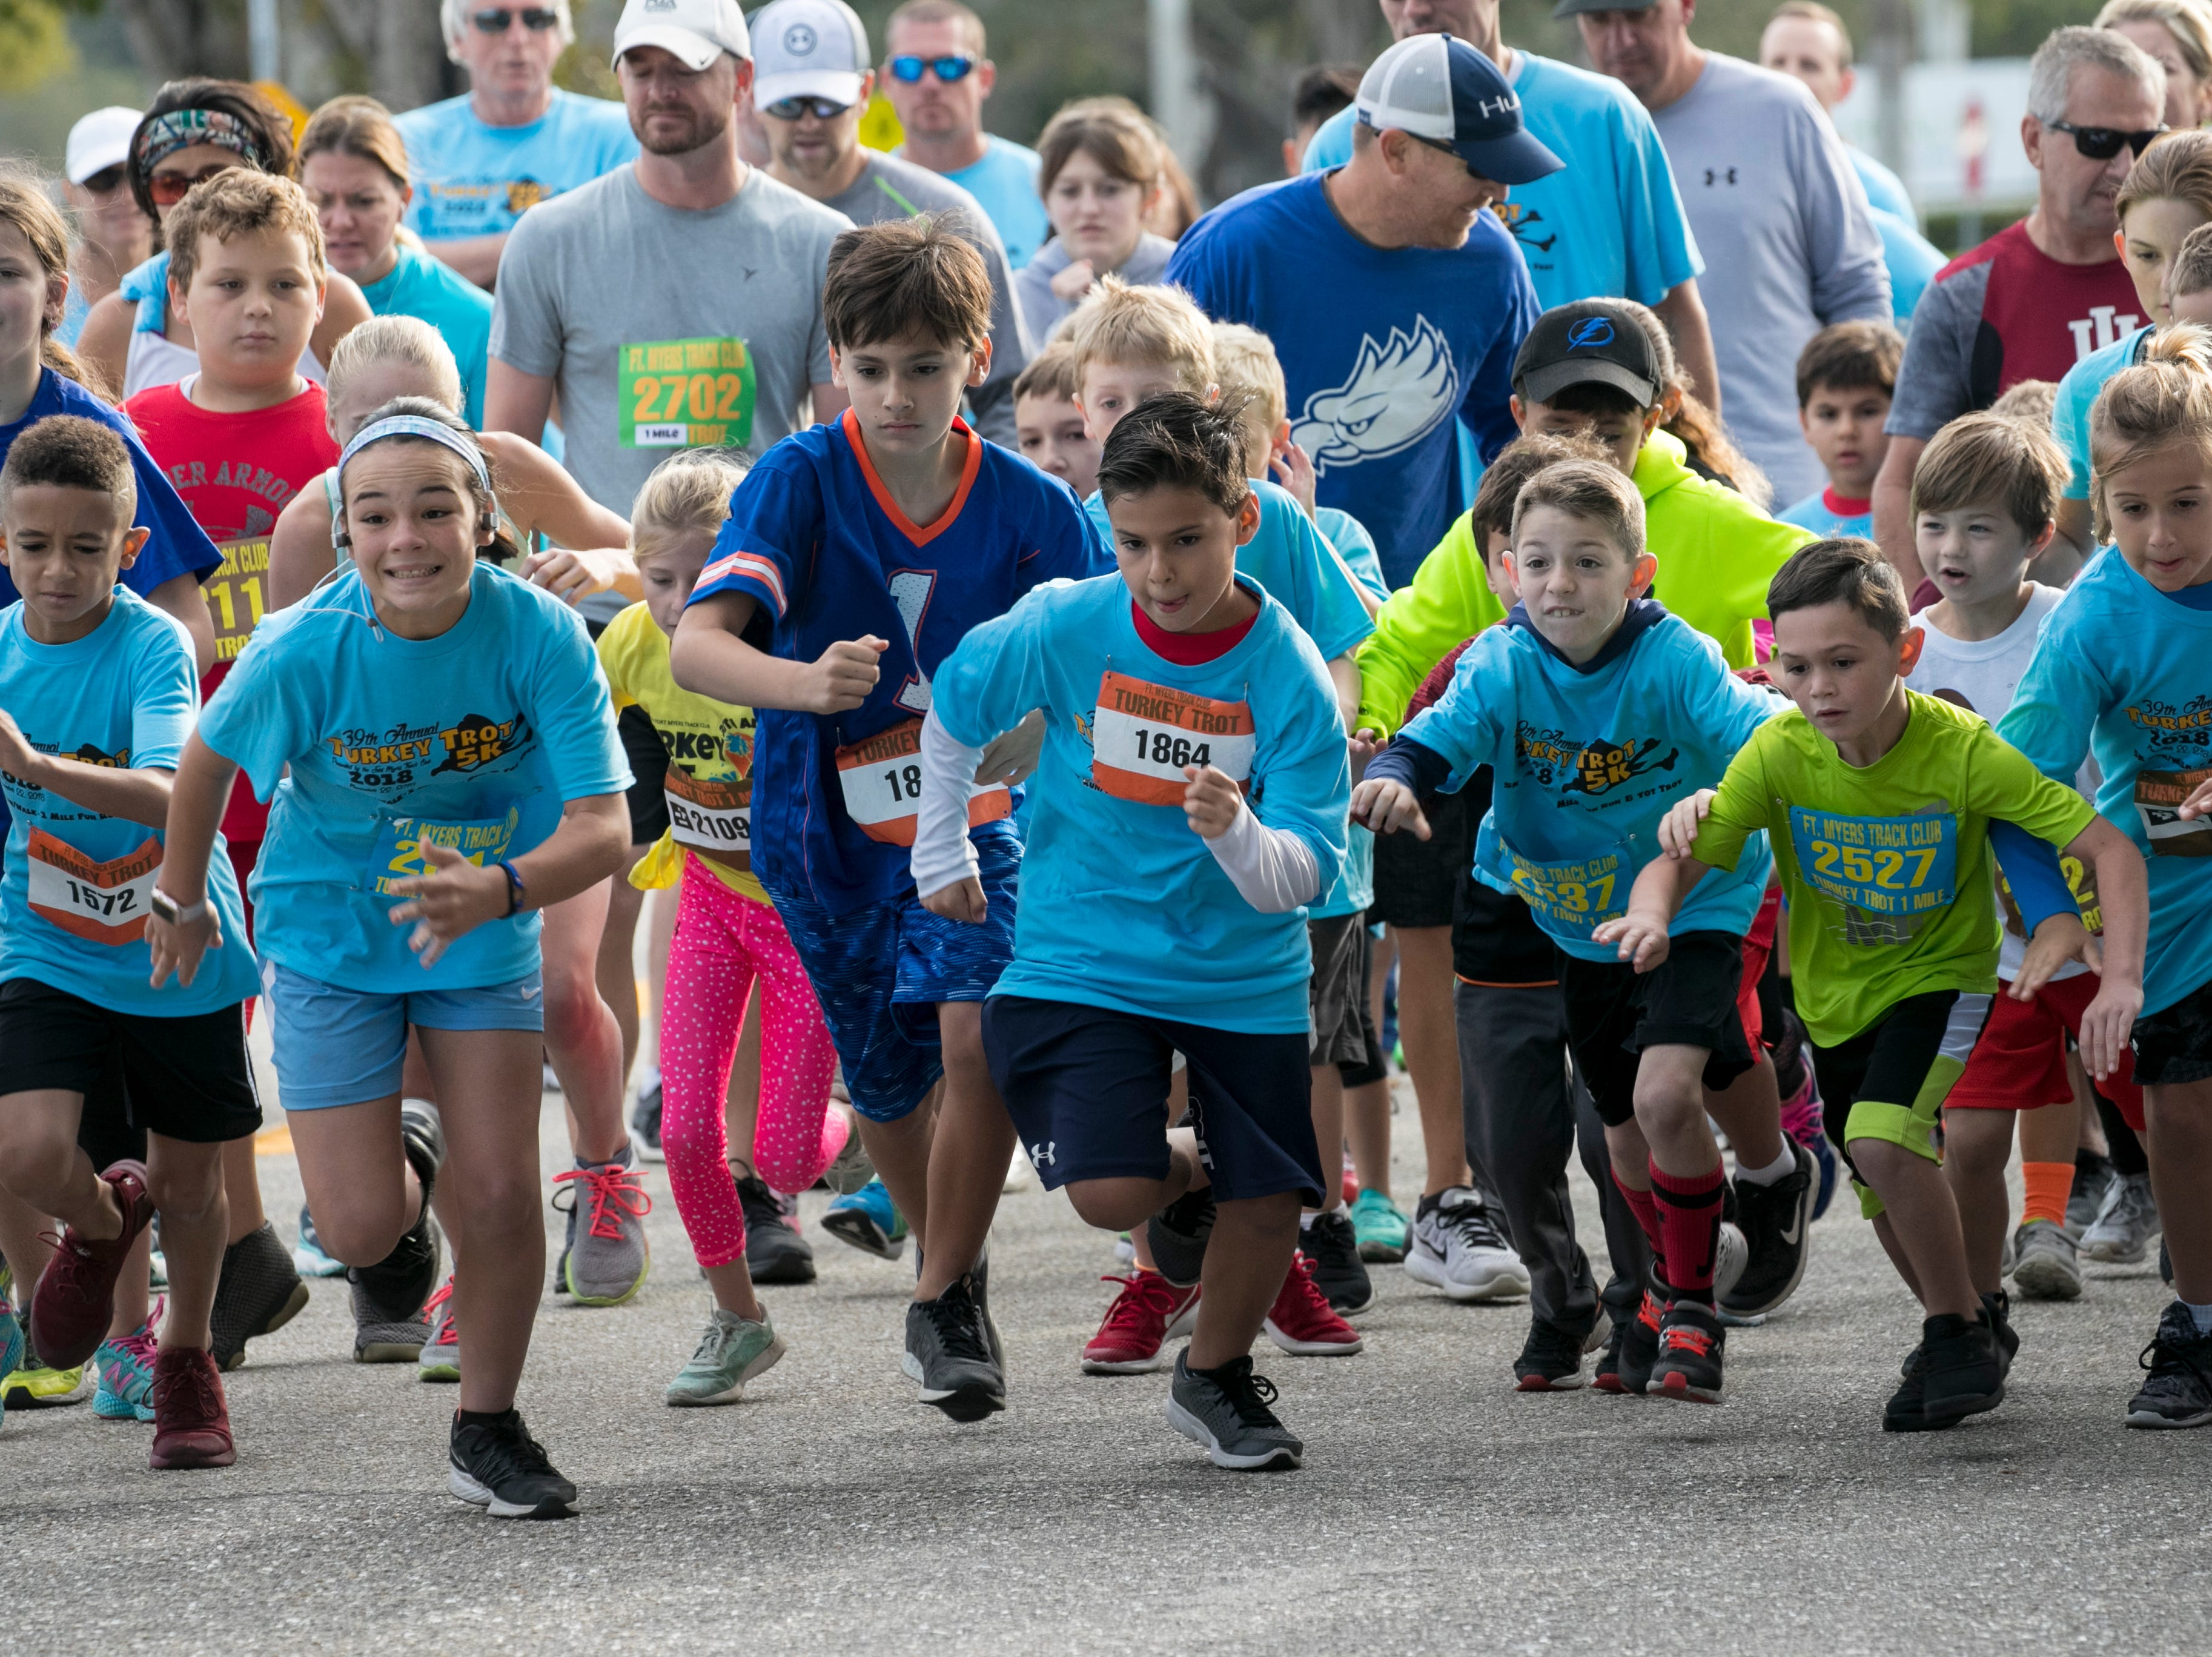 Young runners lead the way at the start of the Turkey Trot 1 Mile run on Thursday, November 22, 2018, in Cape Coral.